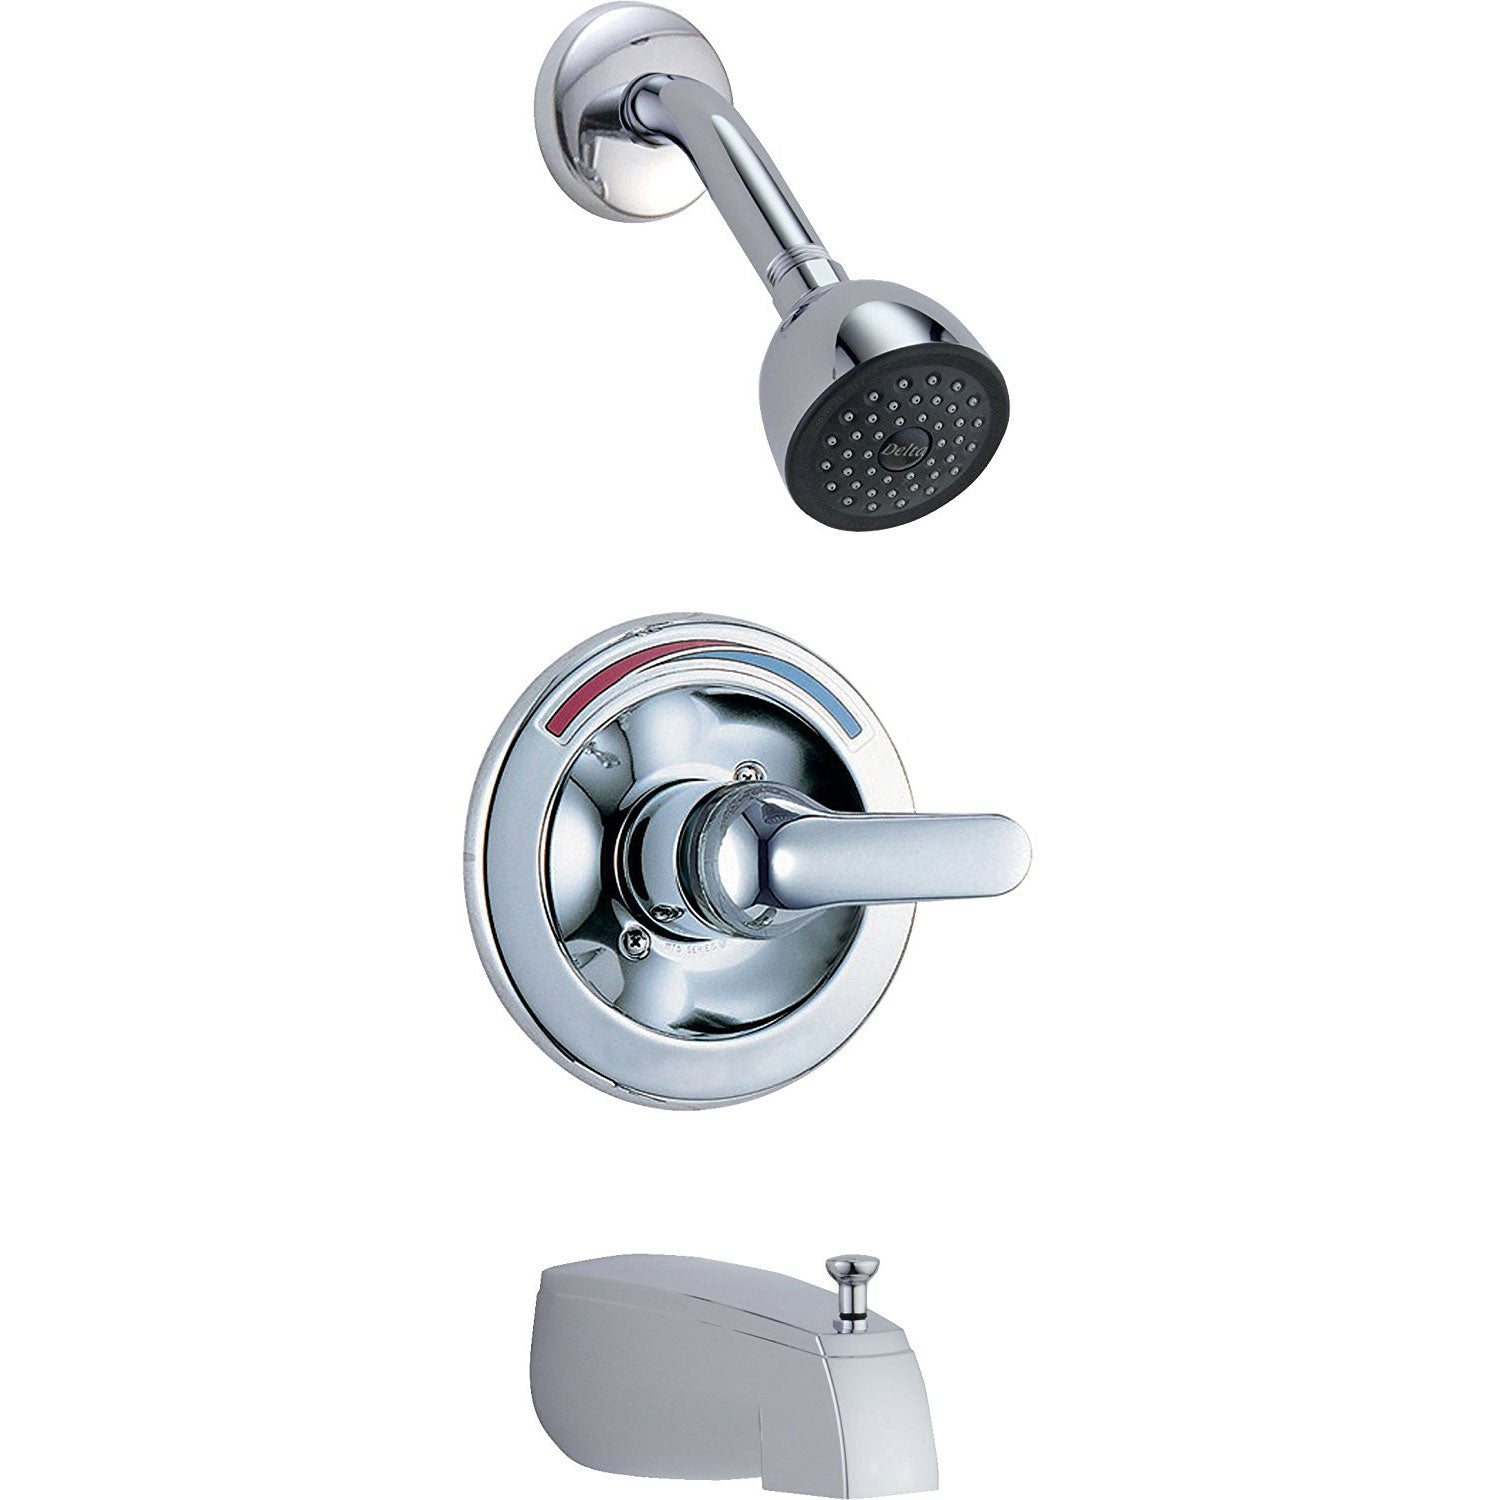 Delta Chrome Finish Monitor 13 Series Classic Style Tub and Shower Faucet Combination Includes Rough-in Valve without Stops D2515V